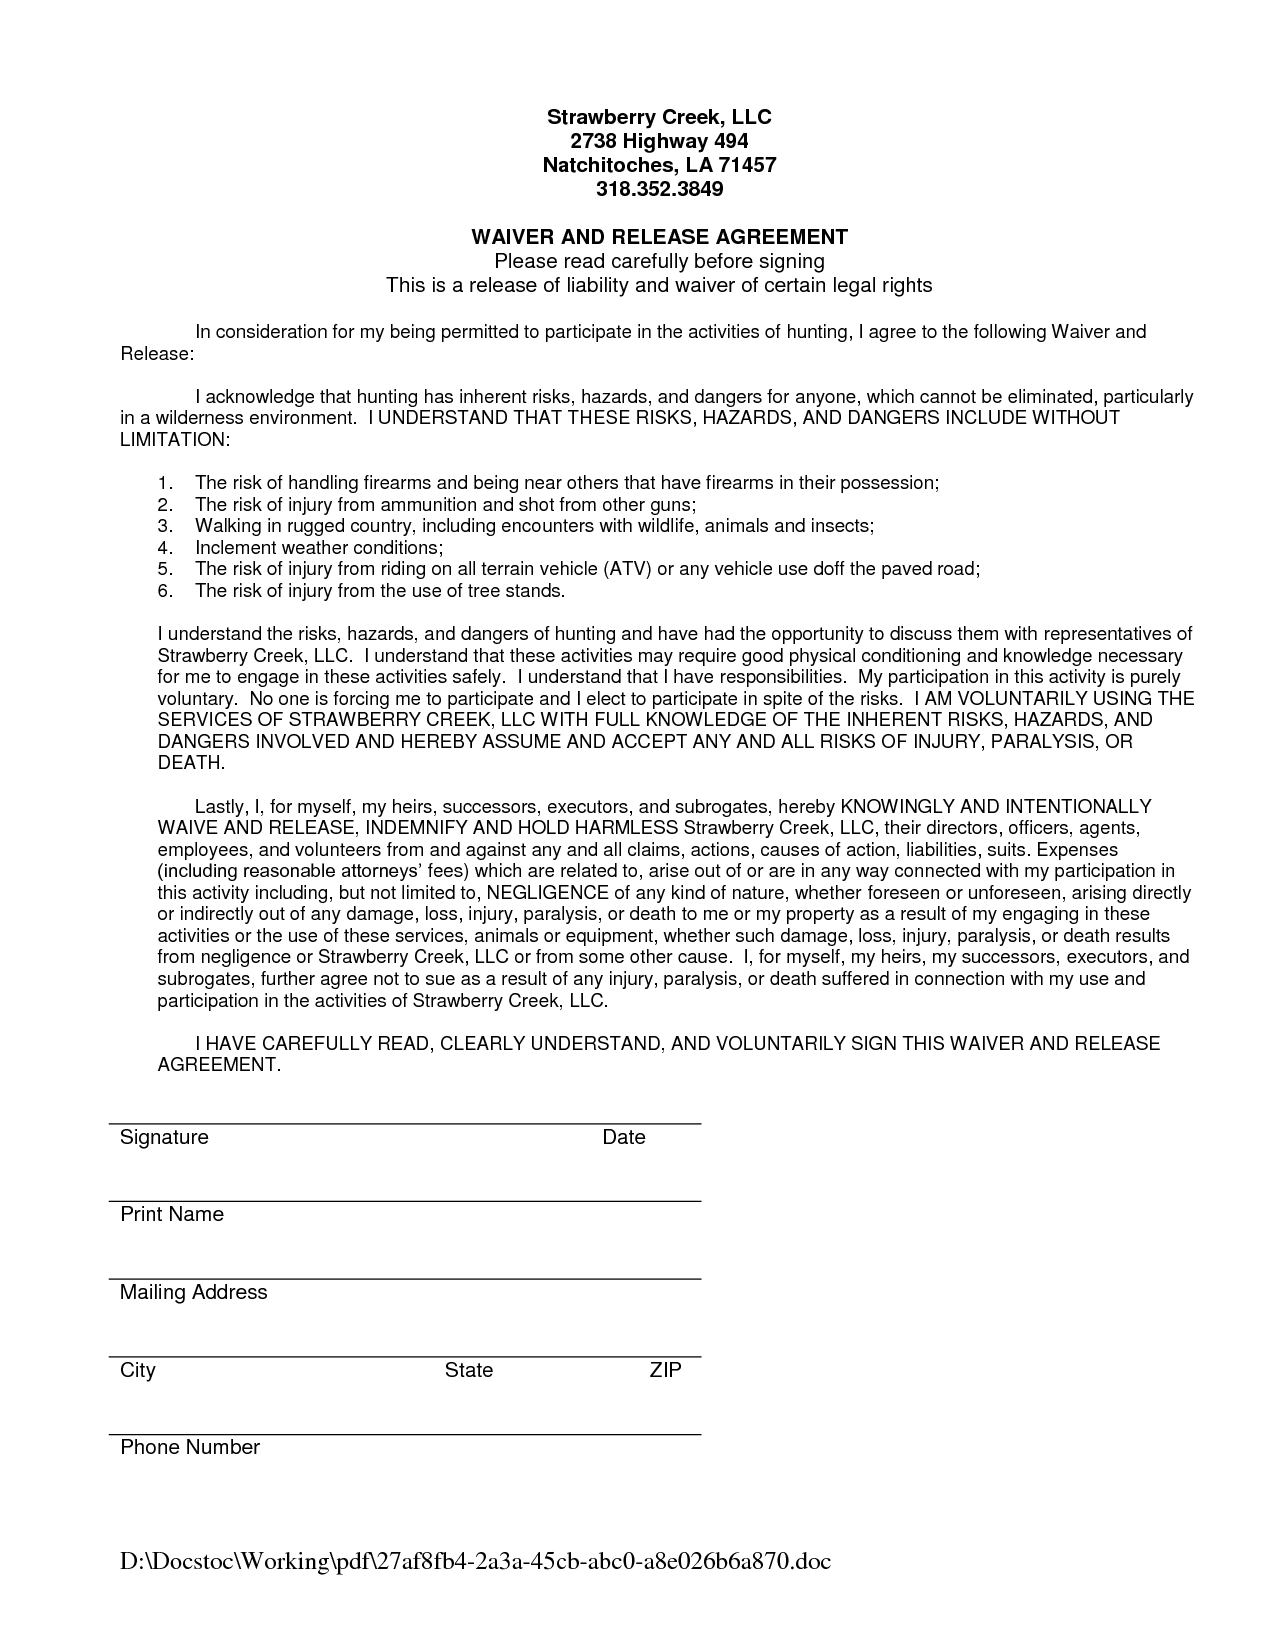 Waiver And Release Of Liability Form Sample Swifterco waiver – Liability Waiver Template Free